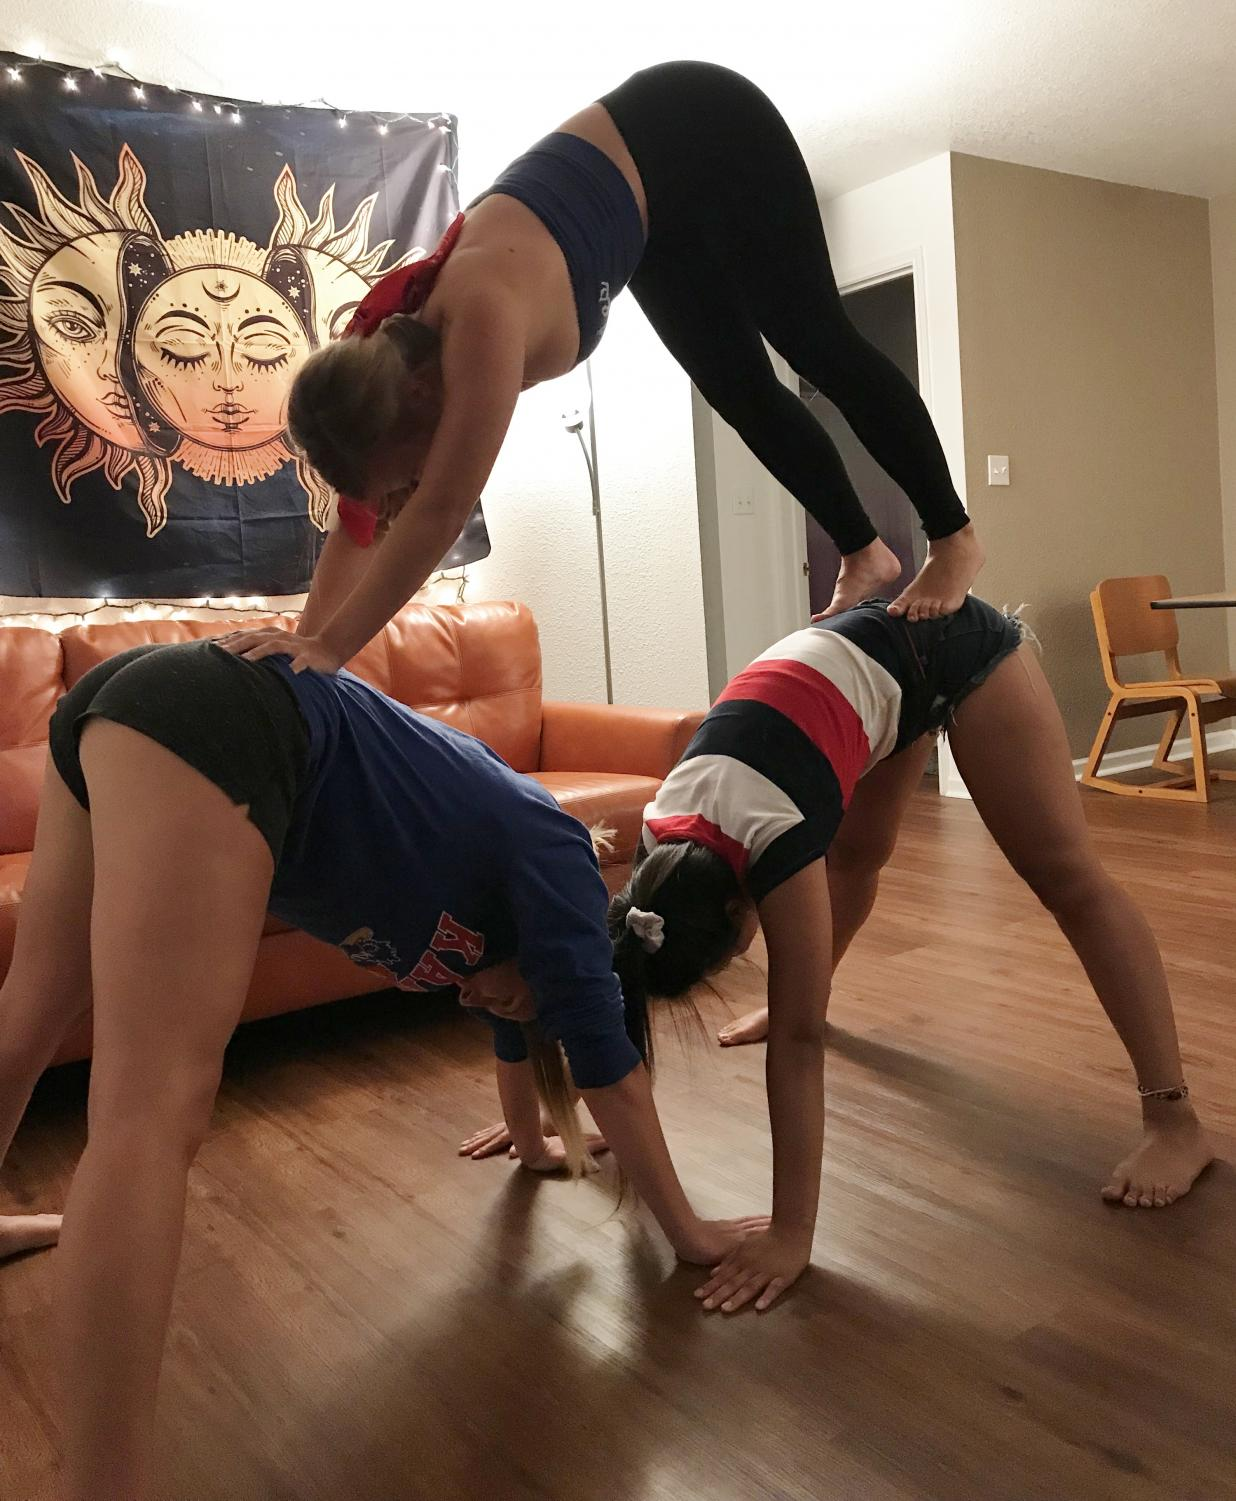 My roommates and I form a three-person pyramid yoga pose.